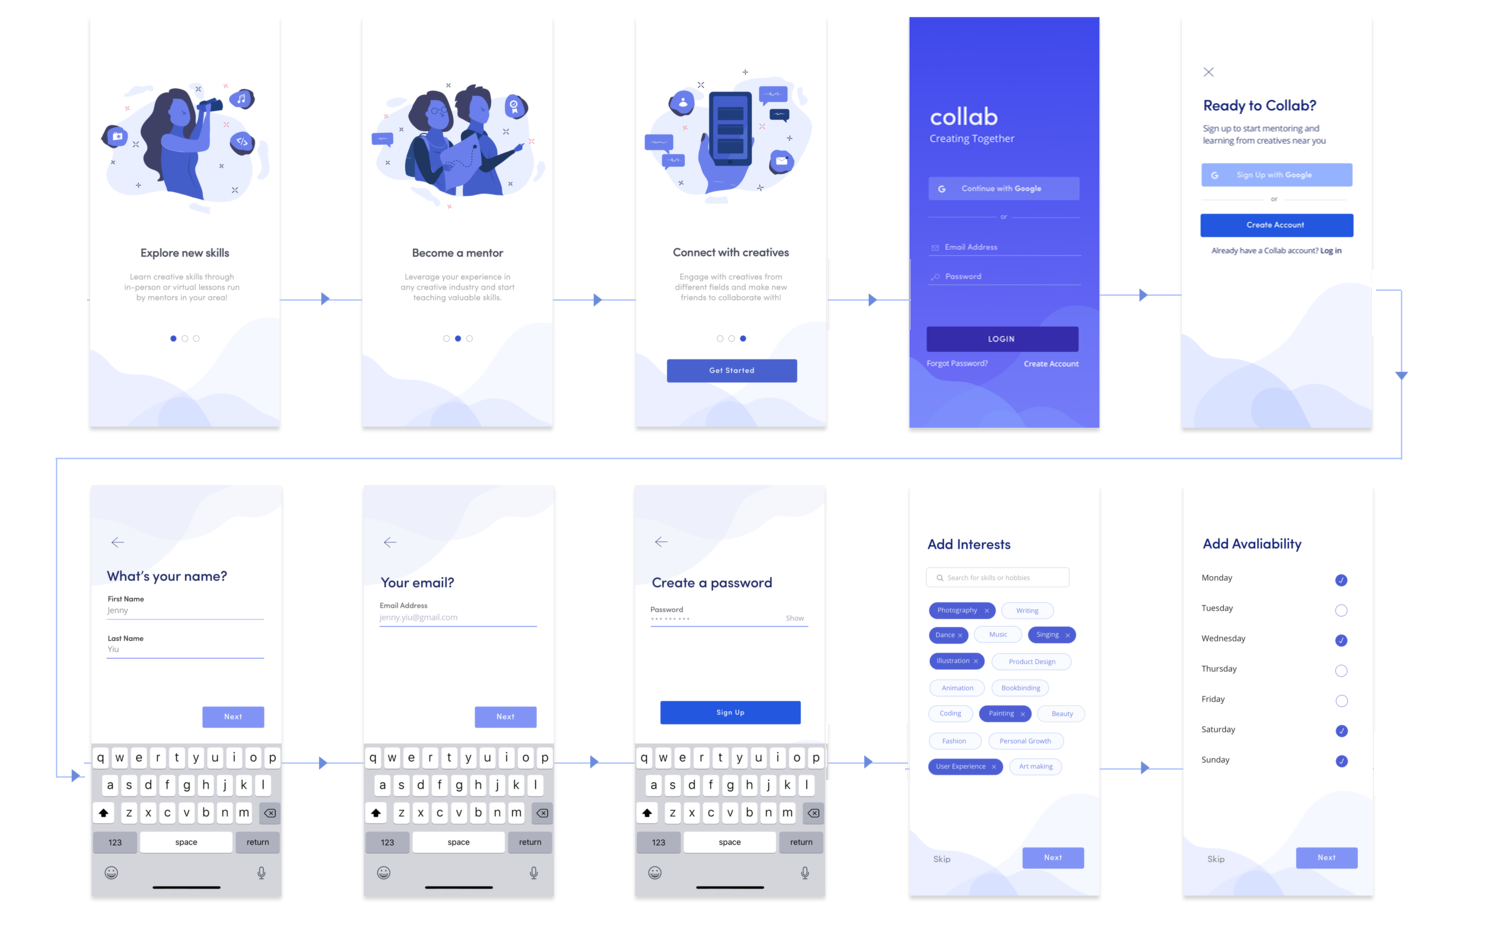 collab-onboarding-flow-updated.png